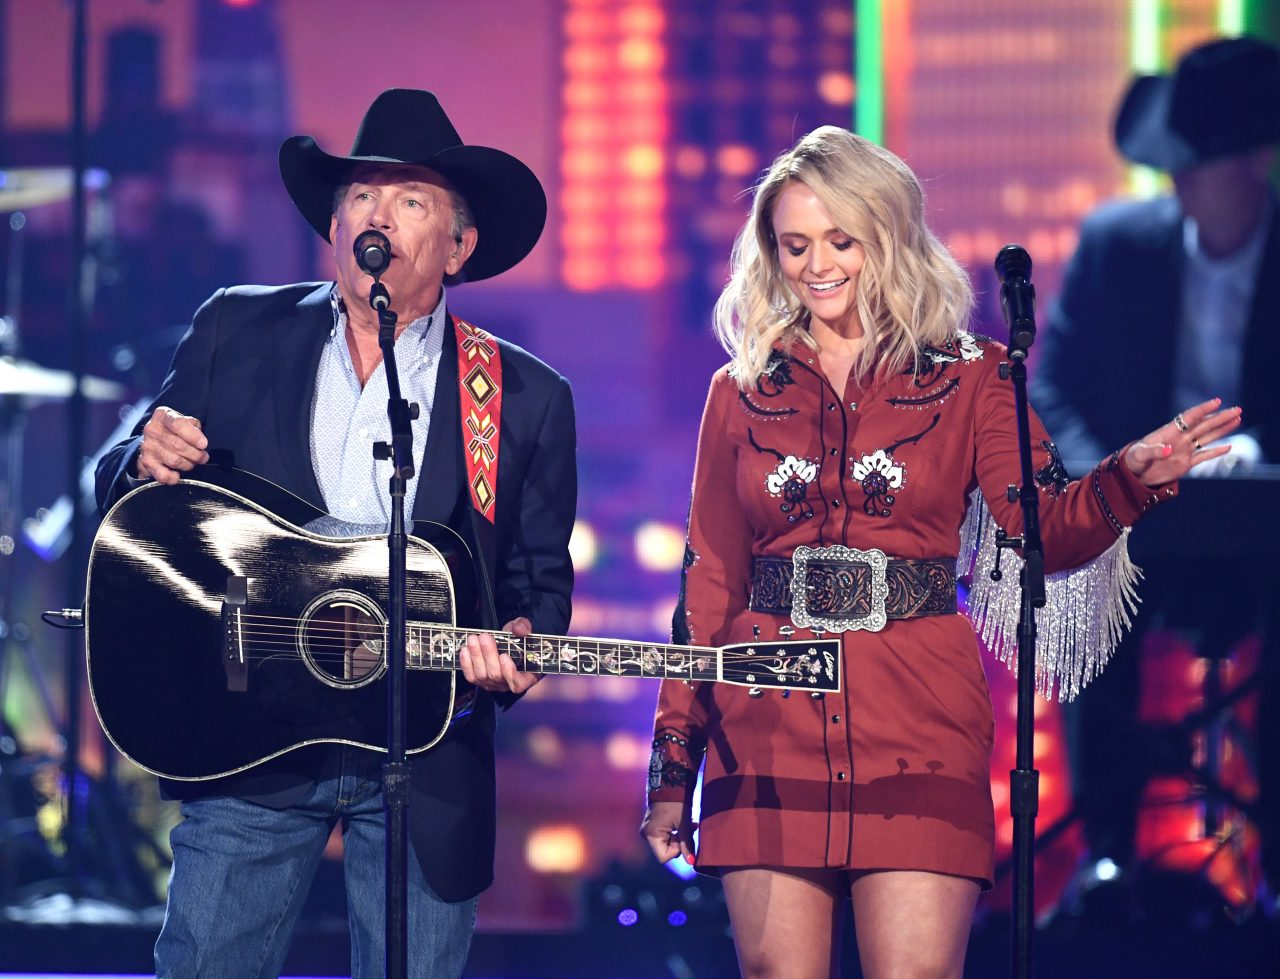 George Strait and Miranda Lambert Flashback to 'Run' at ACM Awards